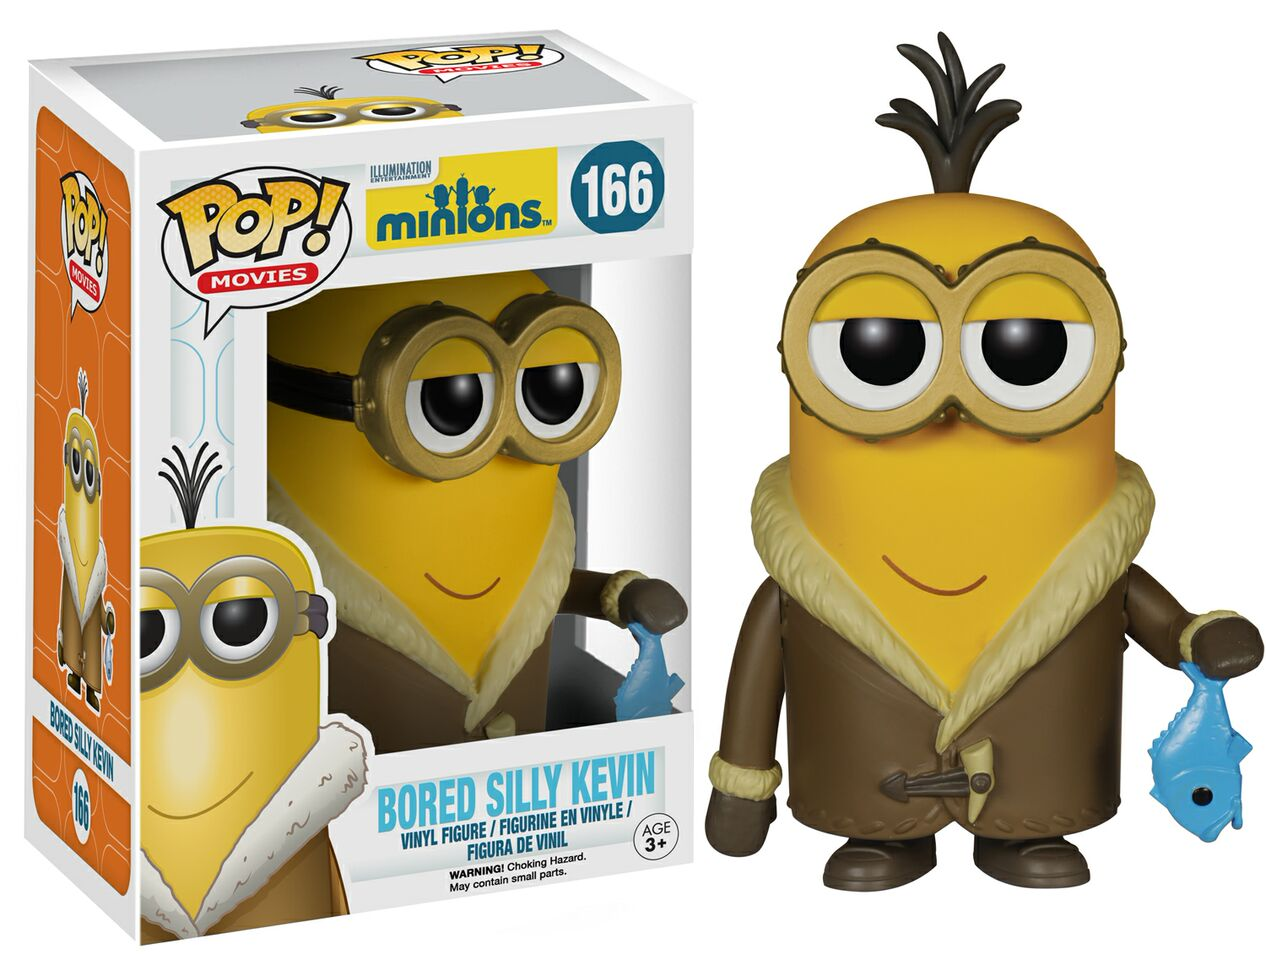 New Yellow Pop Vinyls Are Just Looking For A New Evil Master